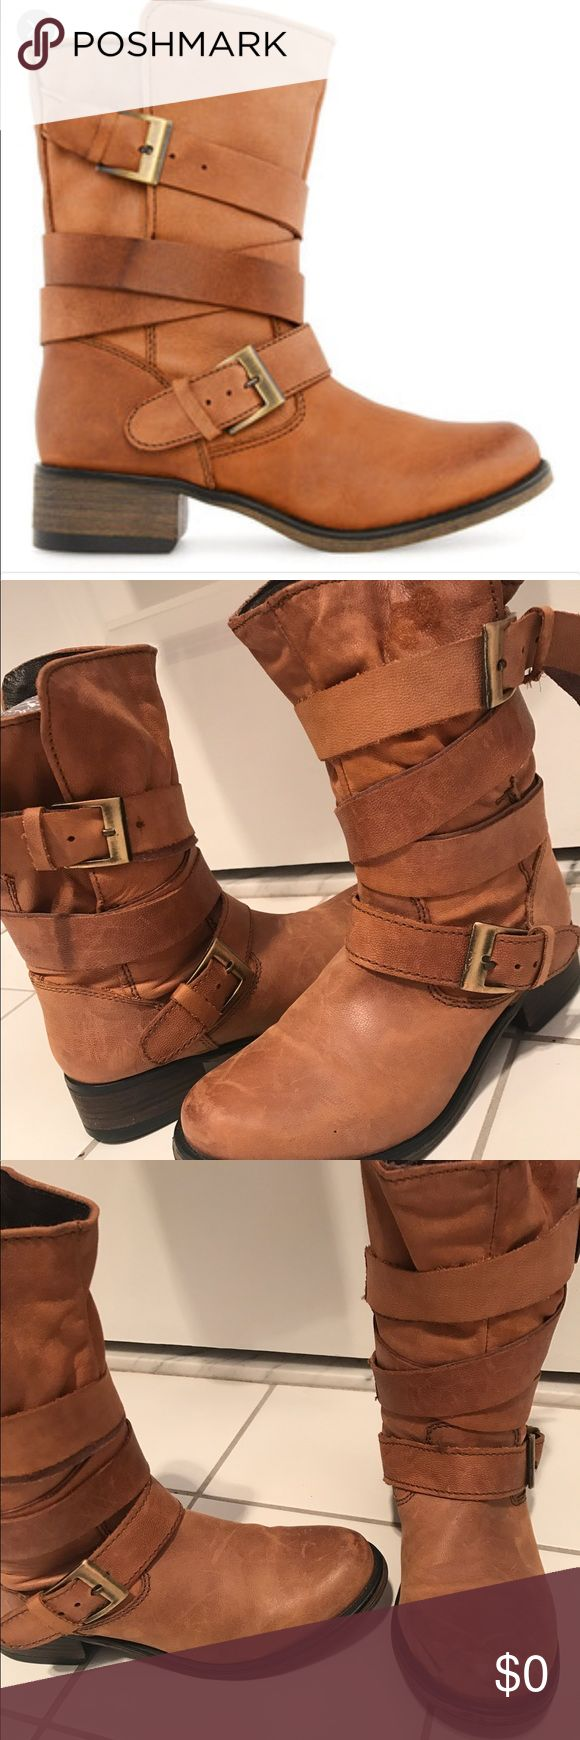 Steve Madden Brewzzer Buckle Boot STEVE MADDEN BREWZZER BOOT  NEW. Color: Cognac. Scuffing shown in front of boot is the look (they are a distressed look boot). Pic of bottoms show they are NEW.  SIZE 6.  Description of the boot is captured in one of the screenshot pic. for more information. 🚫NO TRADES🚫. steve madden Shoes Ankle Boots & Booties